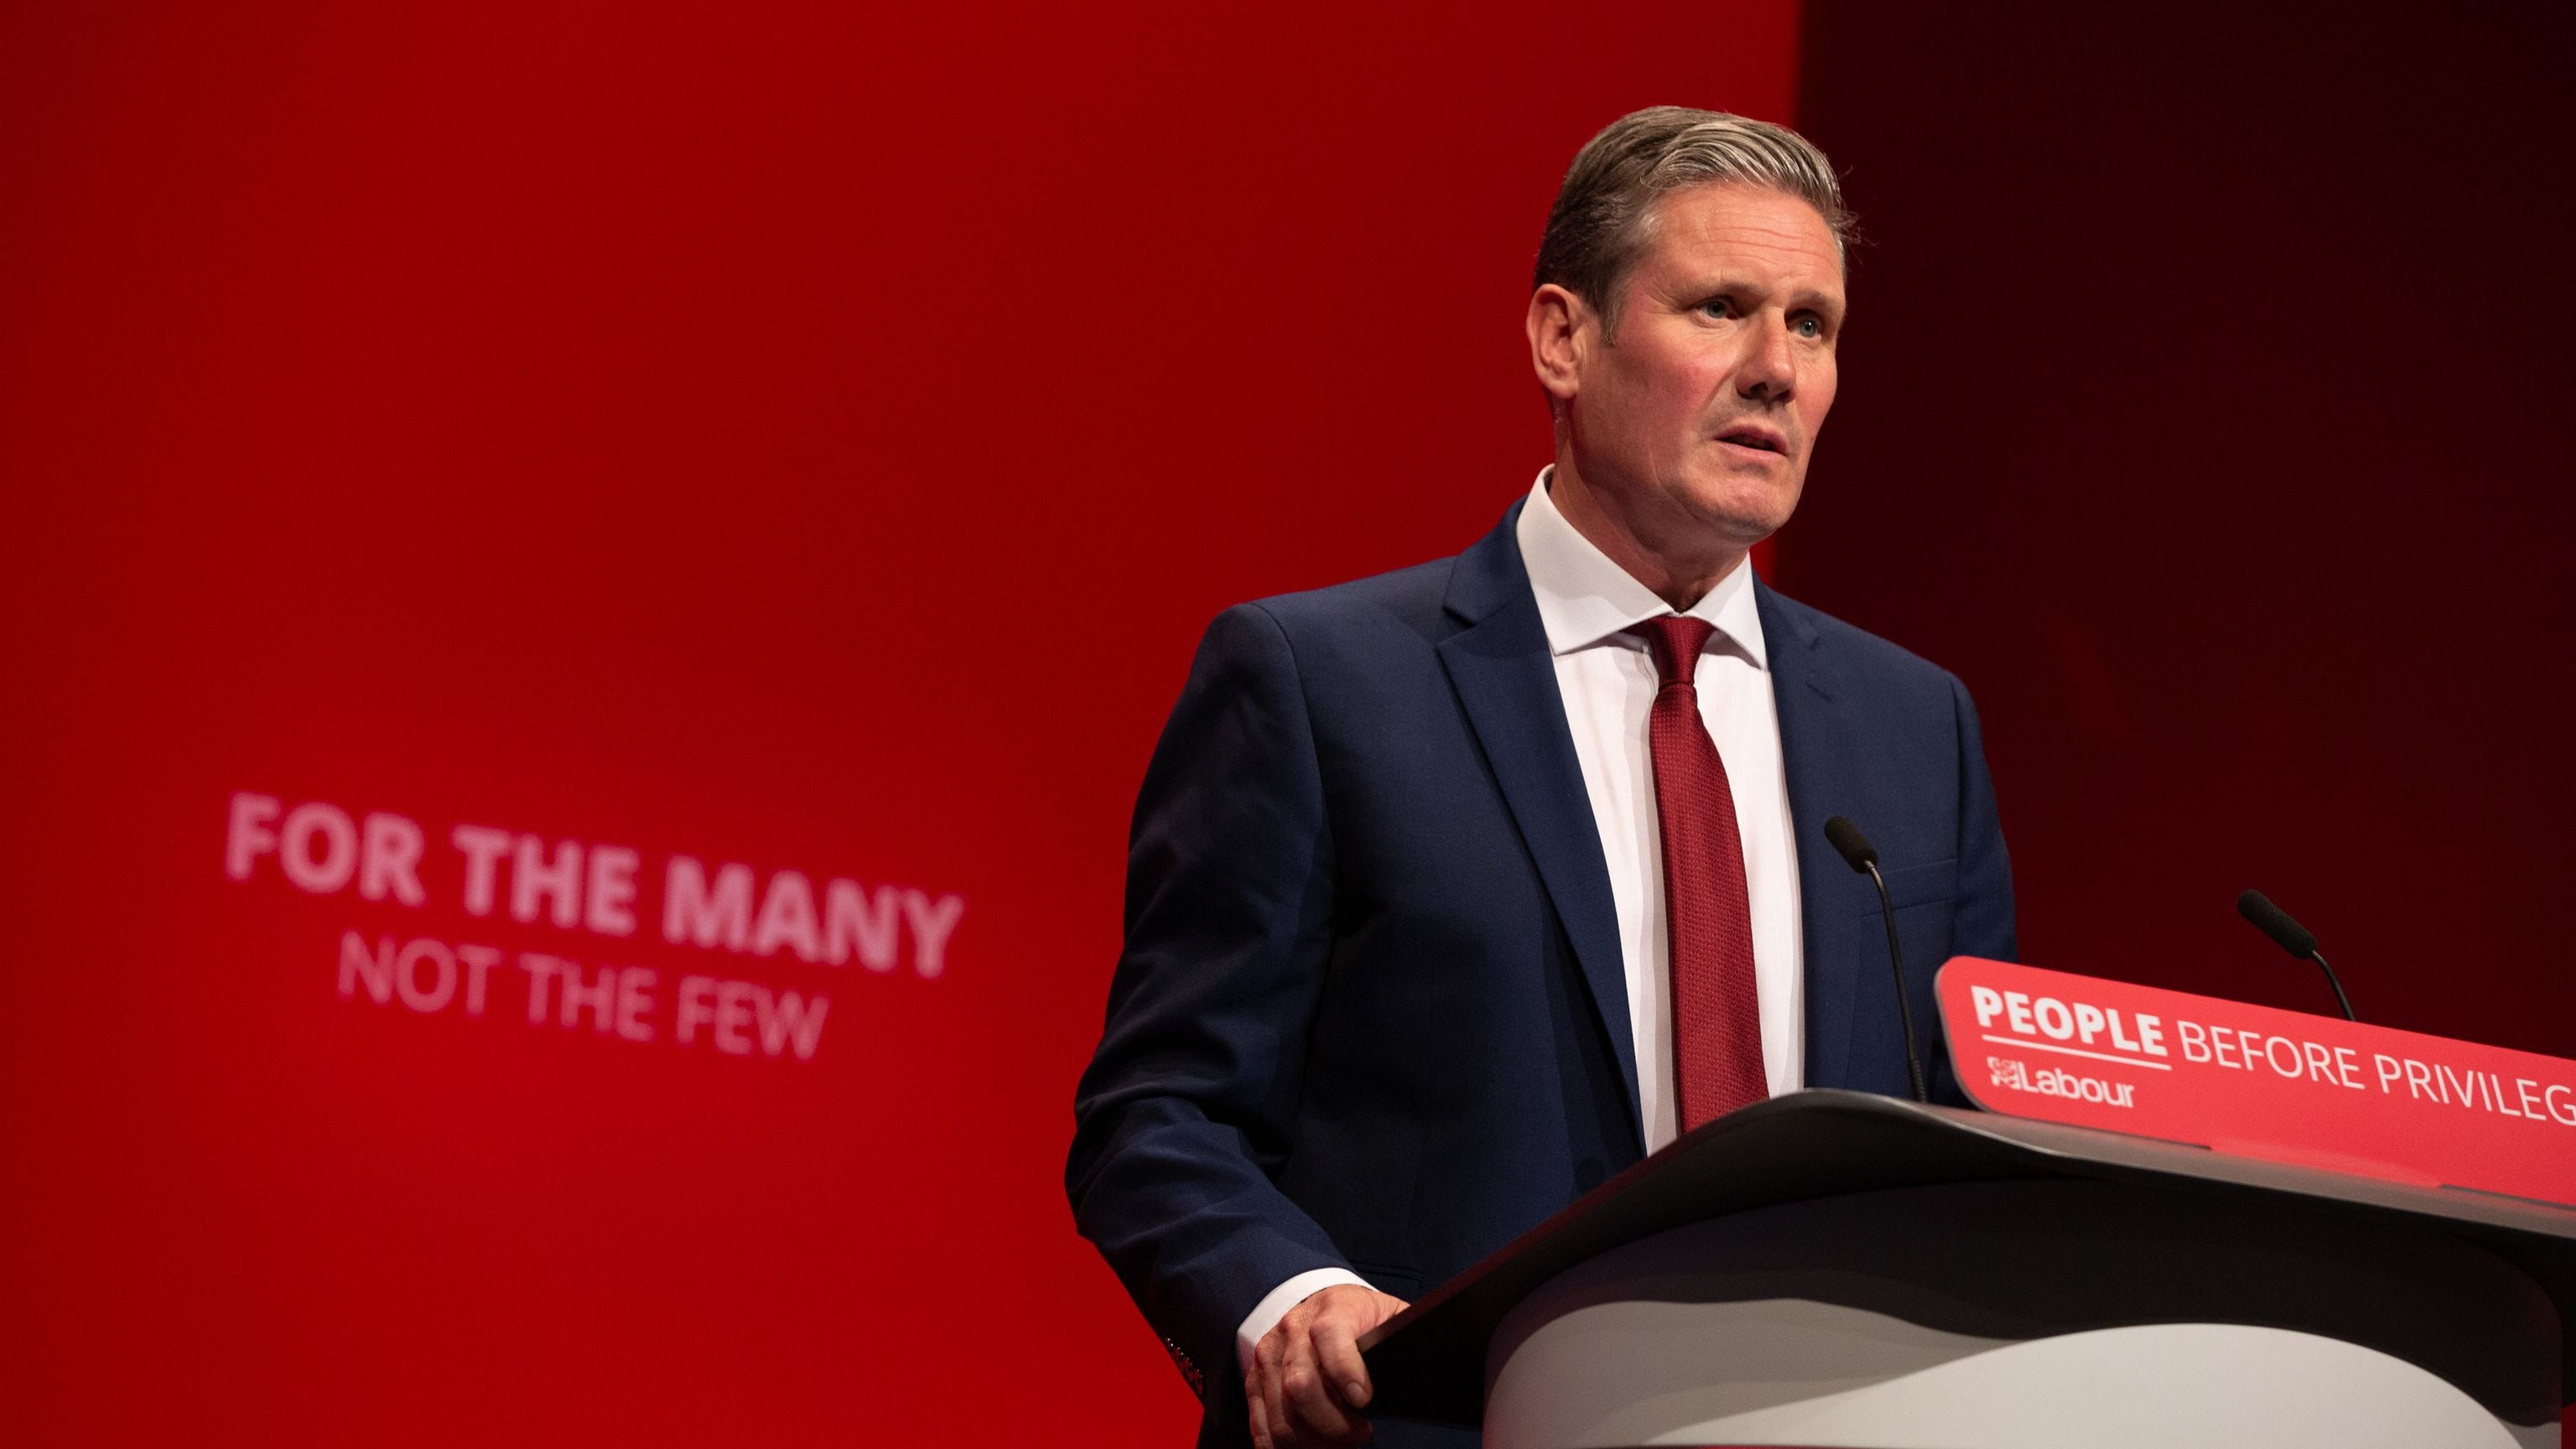 Keir Starmer speaking at the podium at Labour Party conference with red background showing slogan: For The Many Not The Few